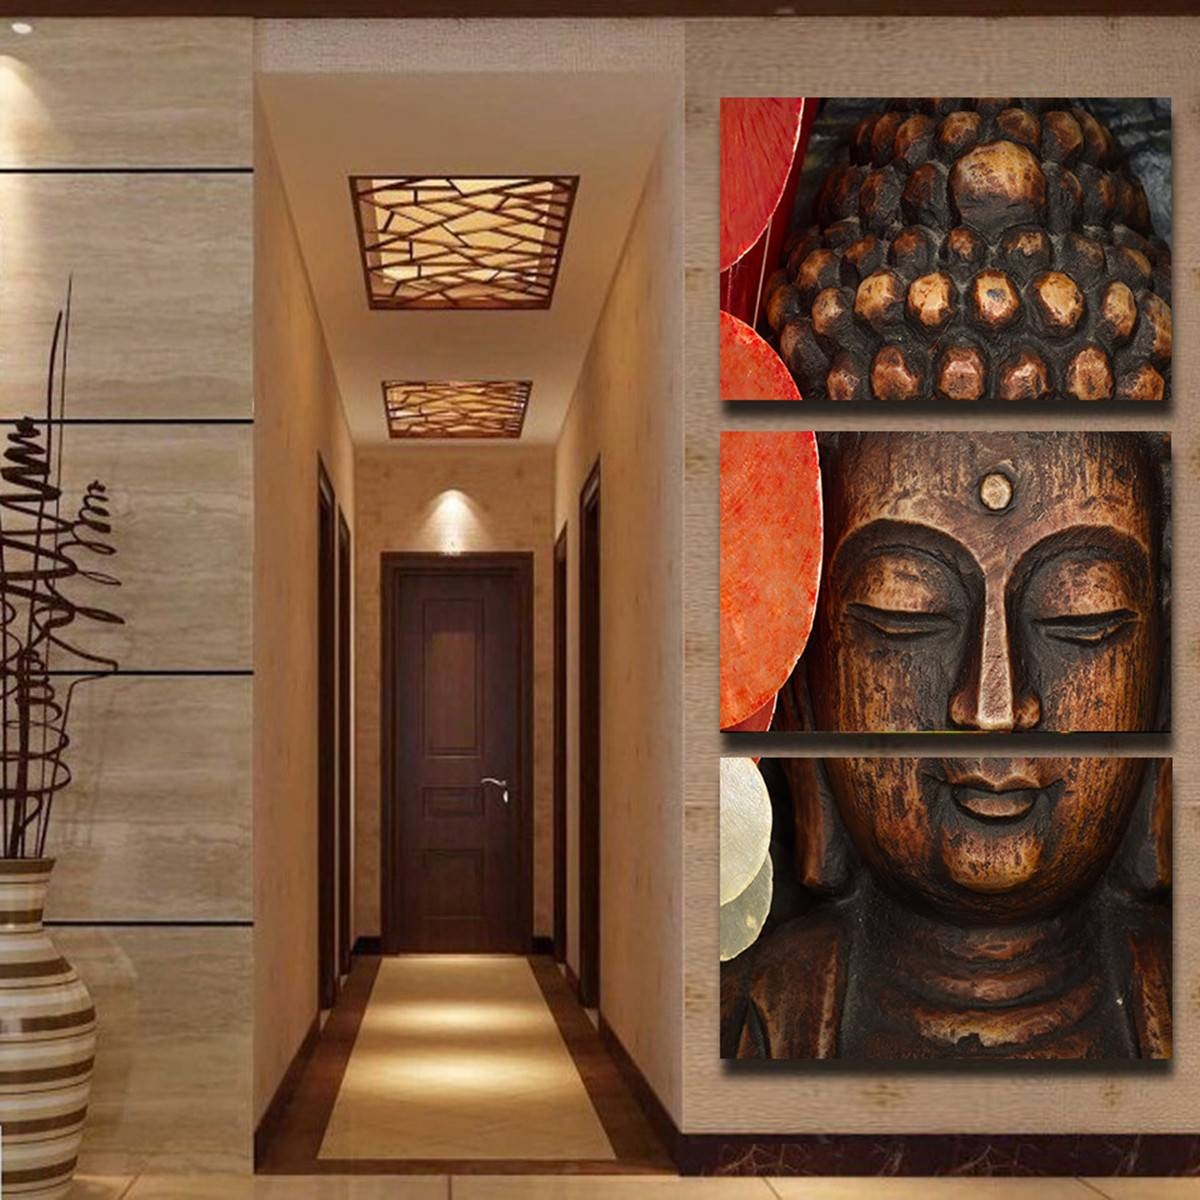 Jermyn 3 Piece Wall Art Diy 3D Buddha Oil Painting Hd Canvas Print Intended For Latest 3D Buddha Wall Art (View 17 of 20)